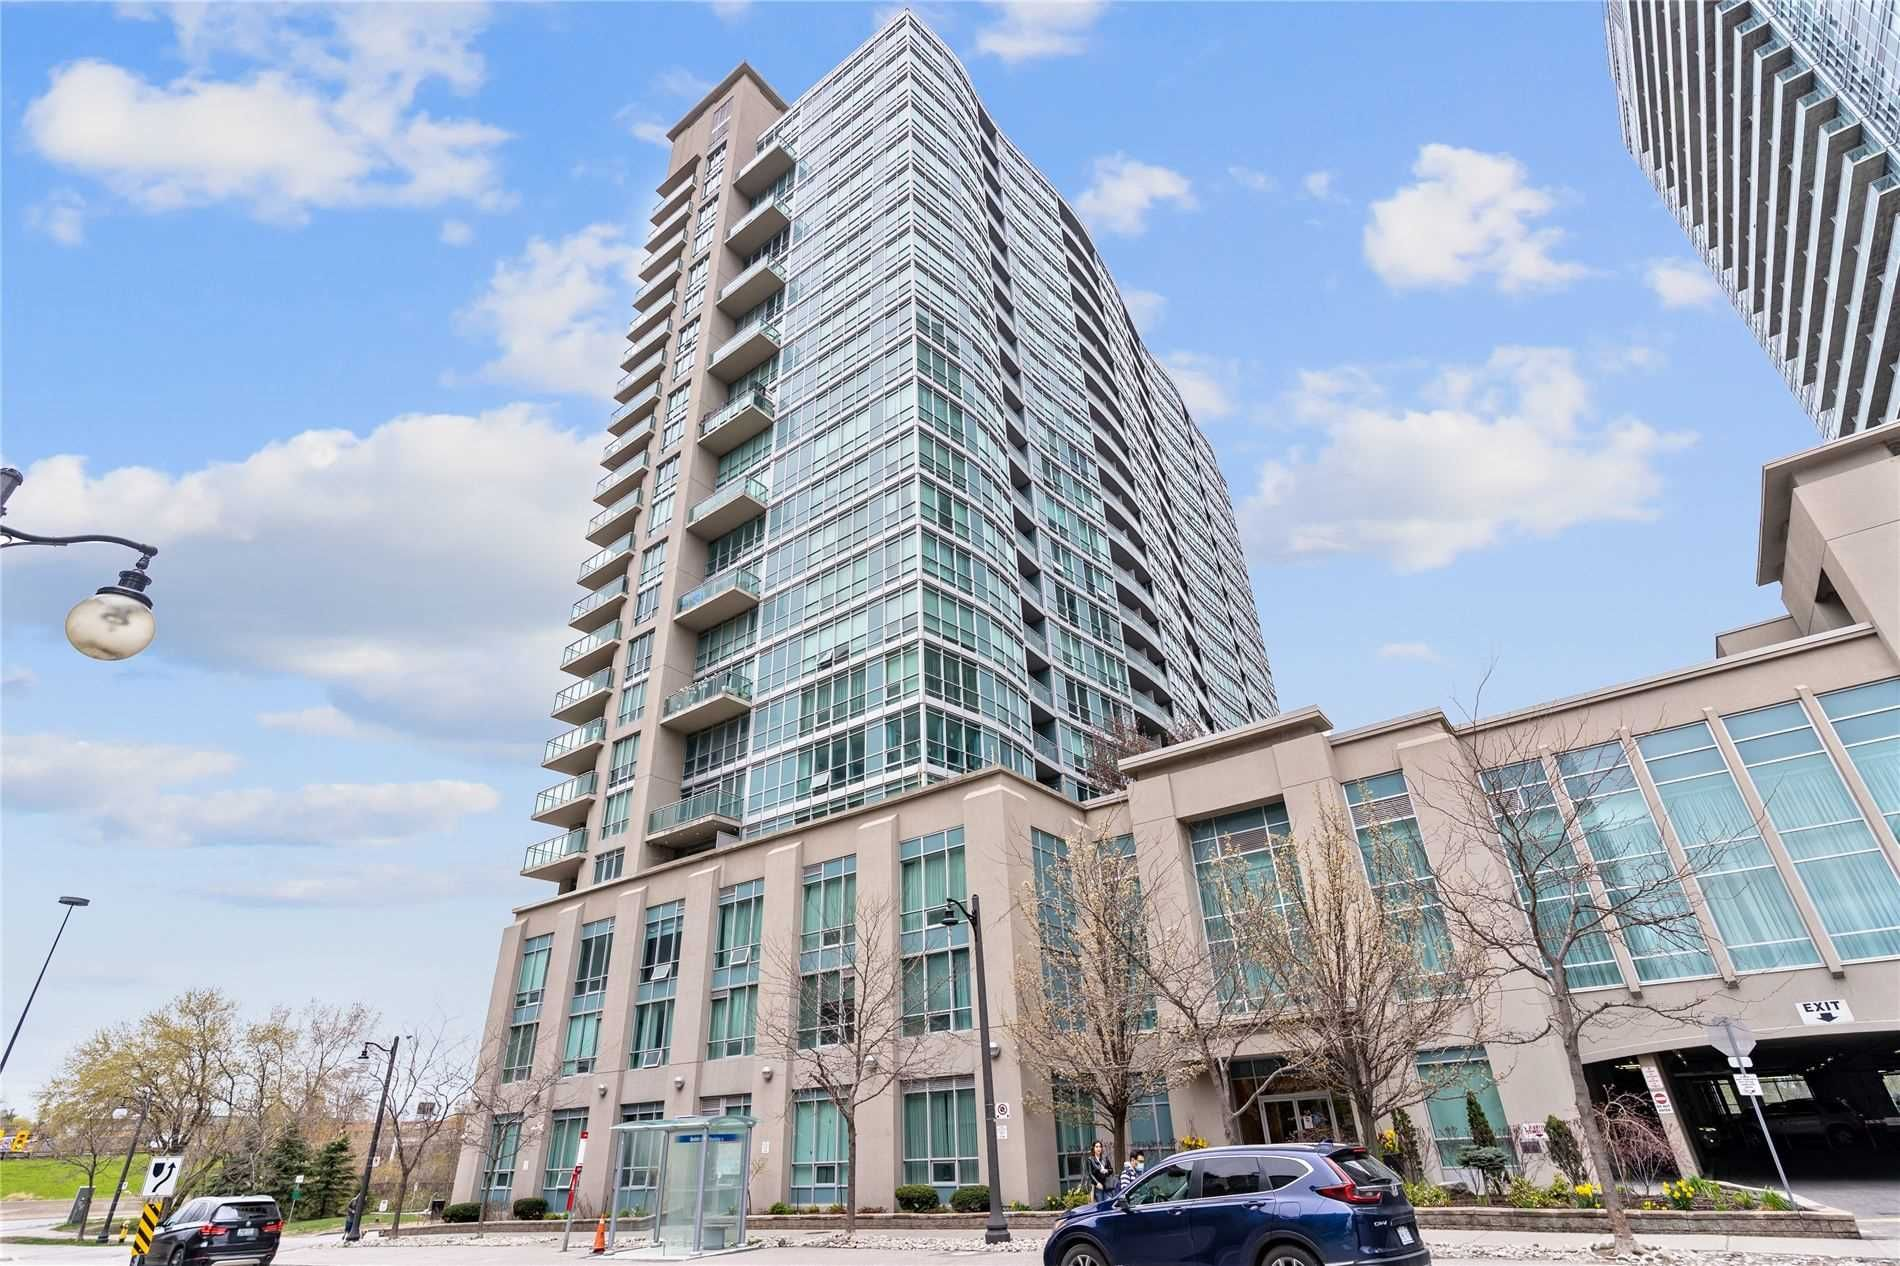 185 Legion Rd N, unit 903 for sale in Toronto - image #2